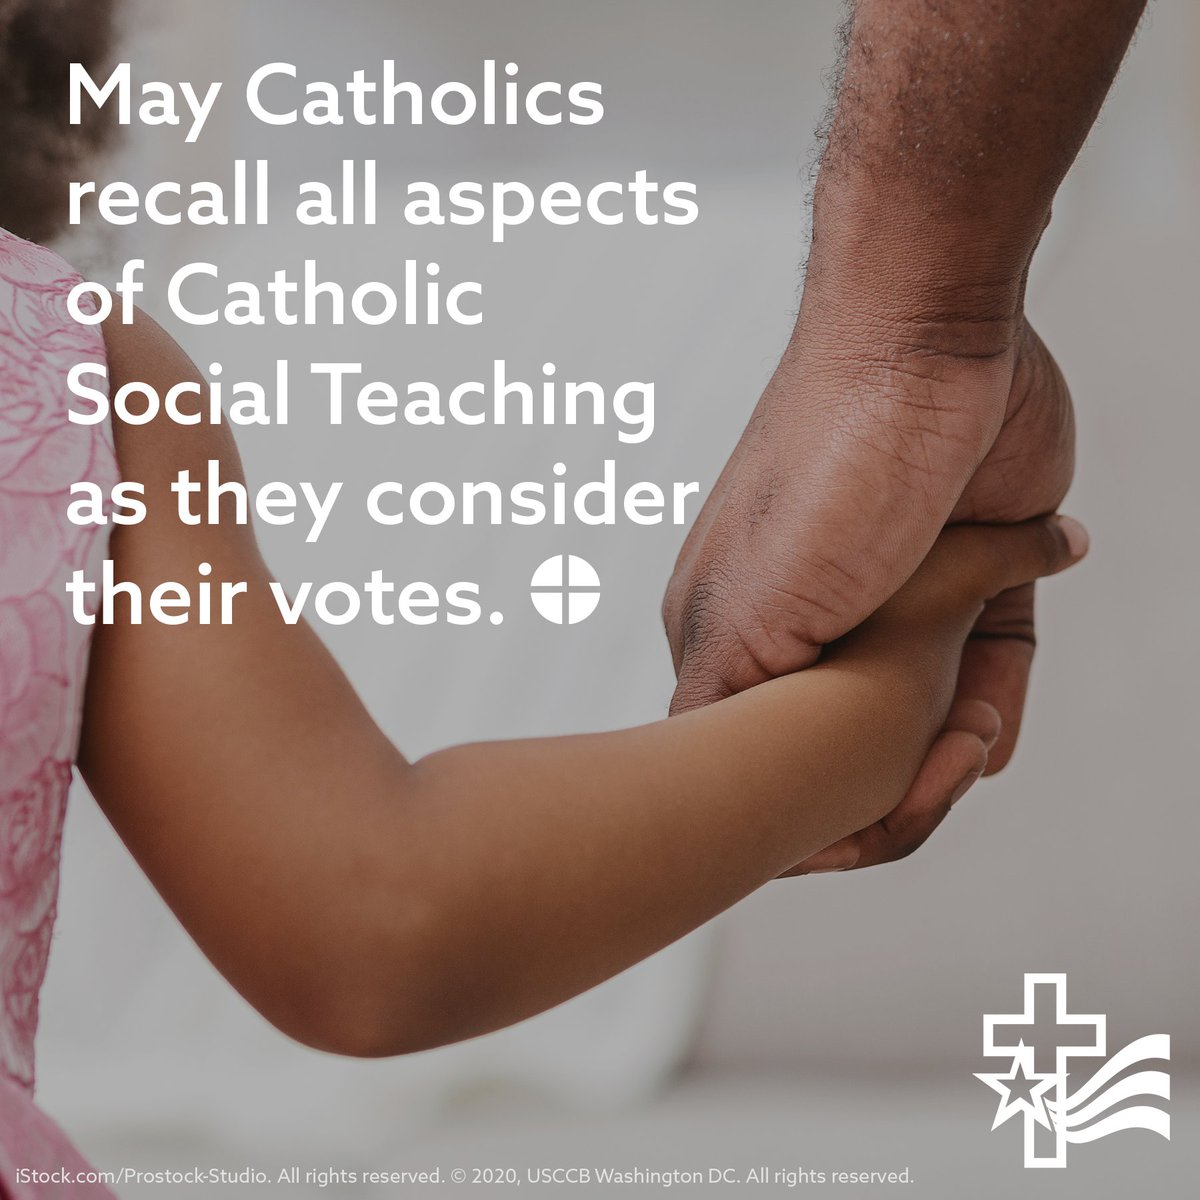 test Twitter Media - May Catholics recall all aspects of Catholic social teaching as they consider their votes. #ElectionNovena #Election2020 https://t.co/aBrLrwVUGC